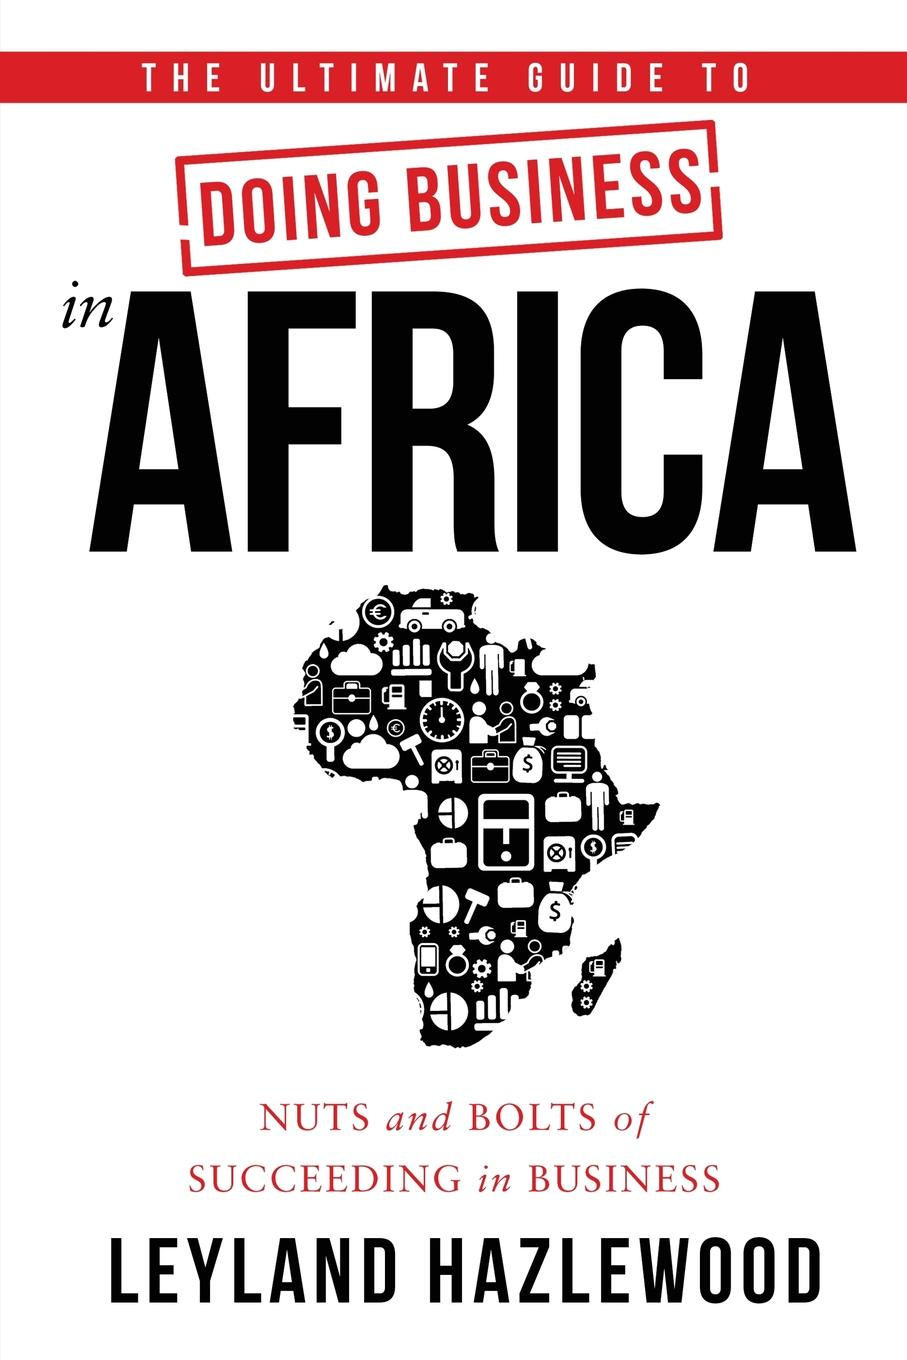 лучшая цена Leyland Hazlewood The Ultimate Guide to Doing Business in Africa. Nuts and Bolts of Succeeding in Business